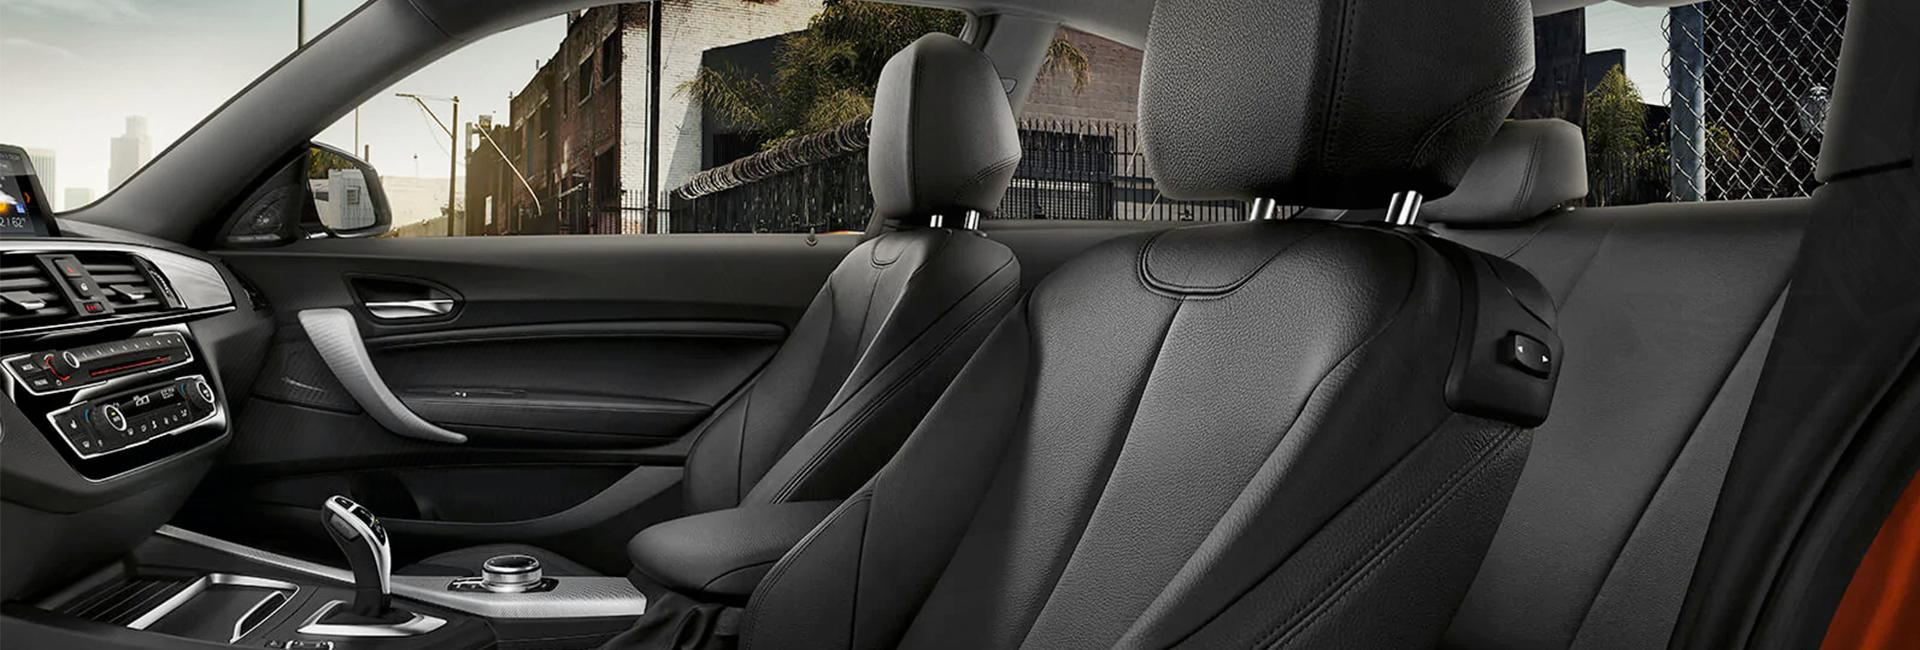 Interior image of the 2020 BMW 2 Series